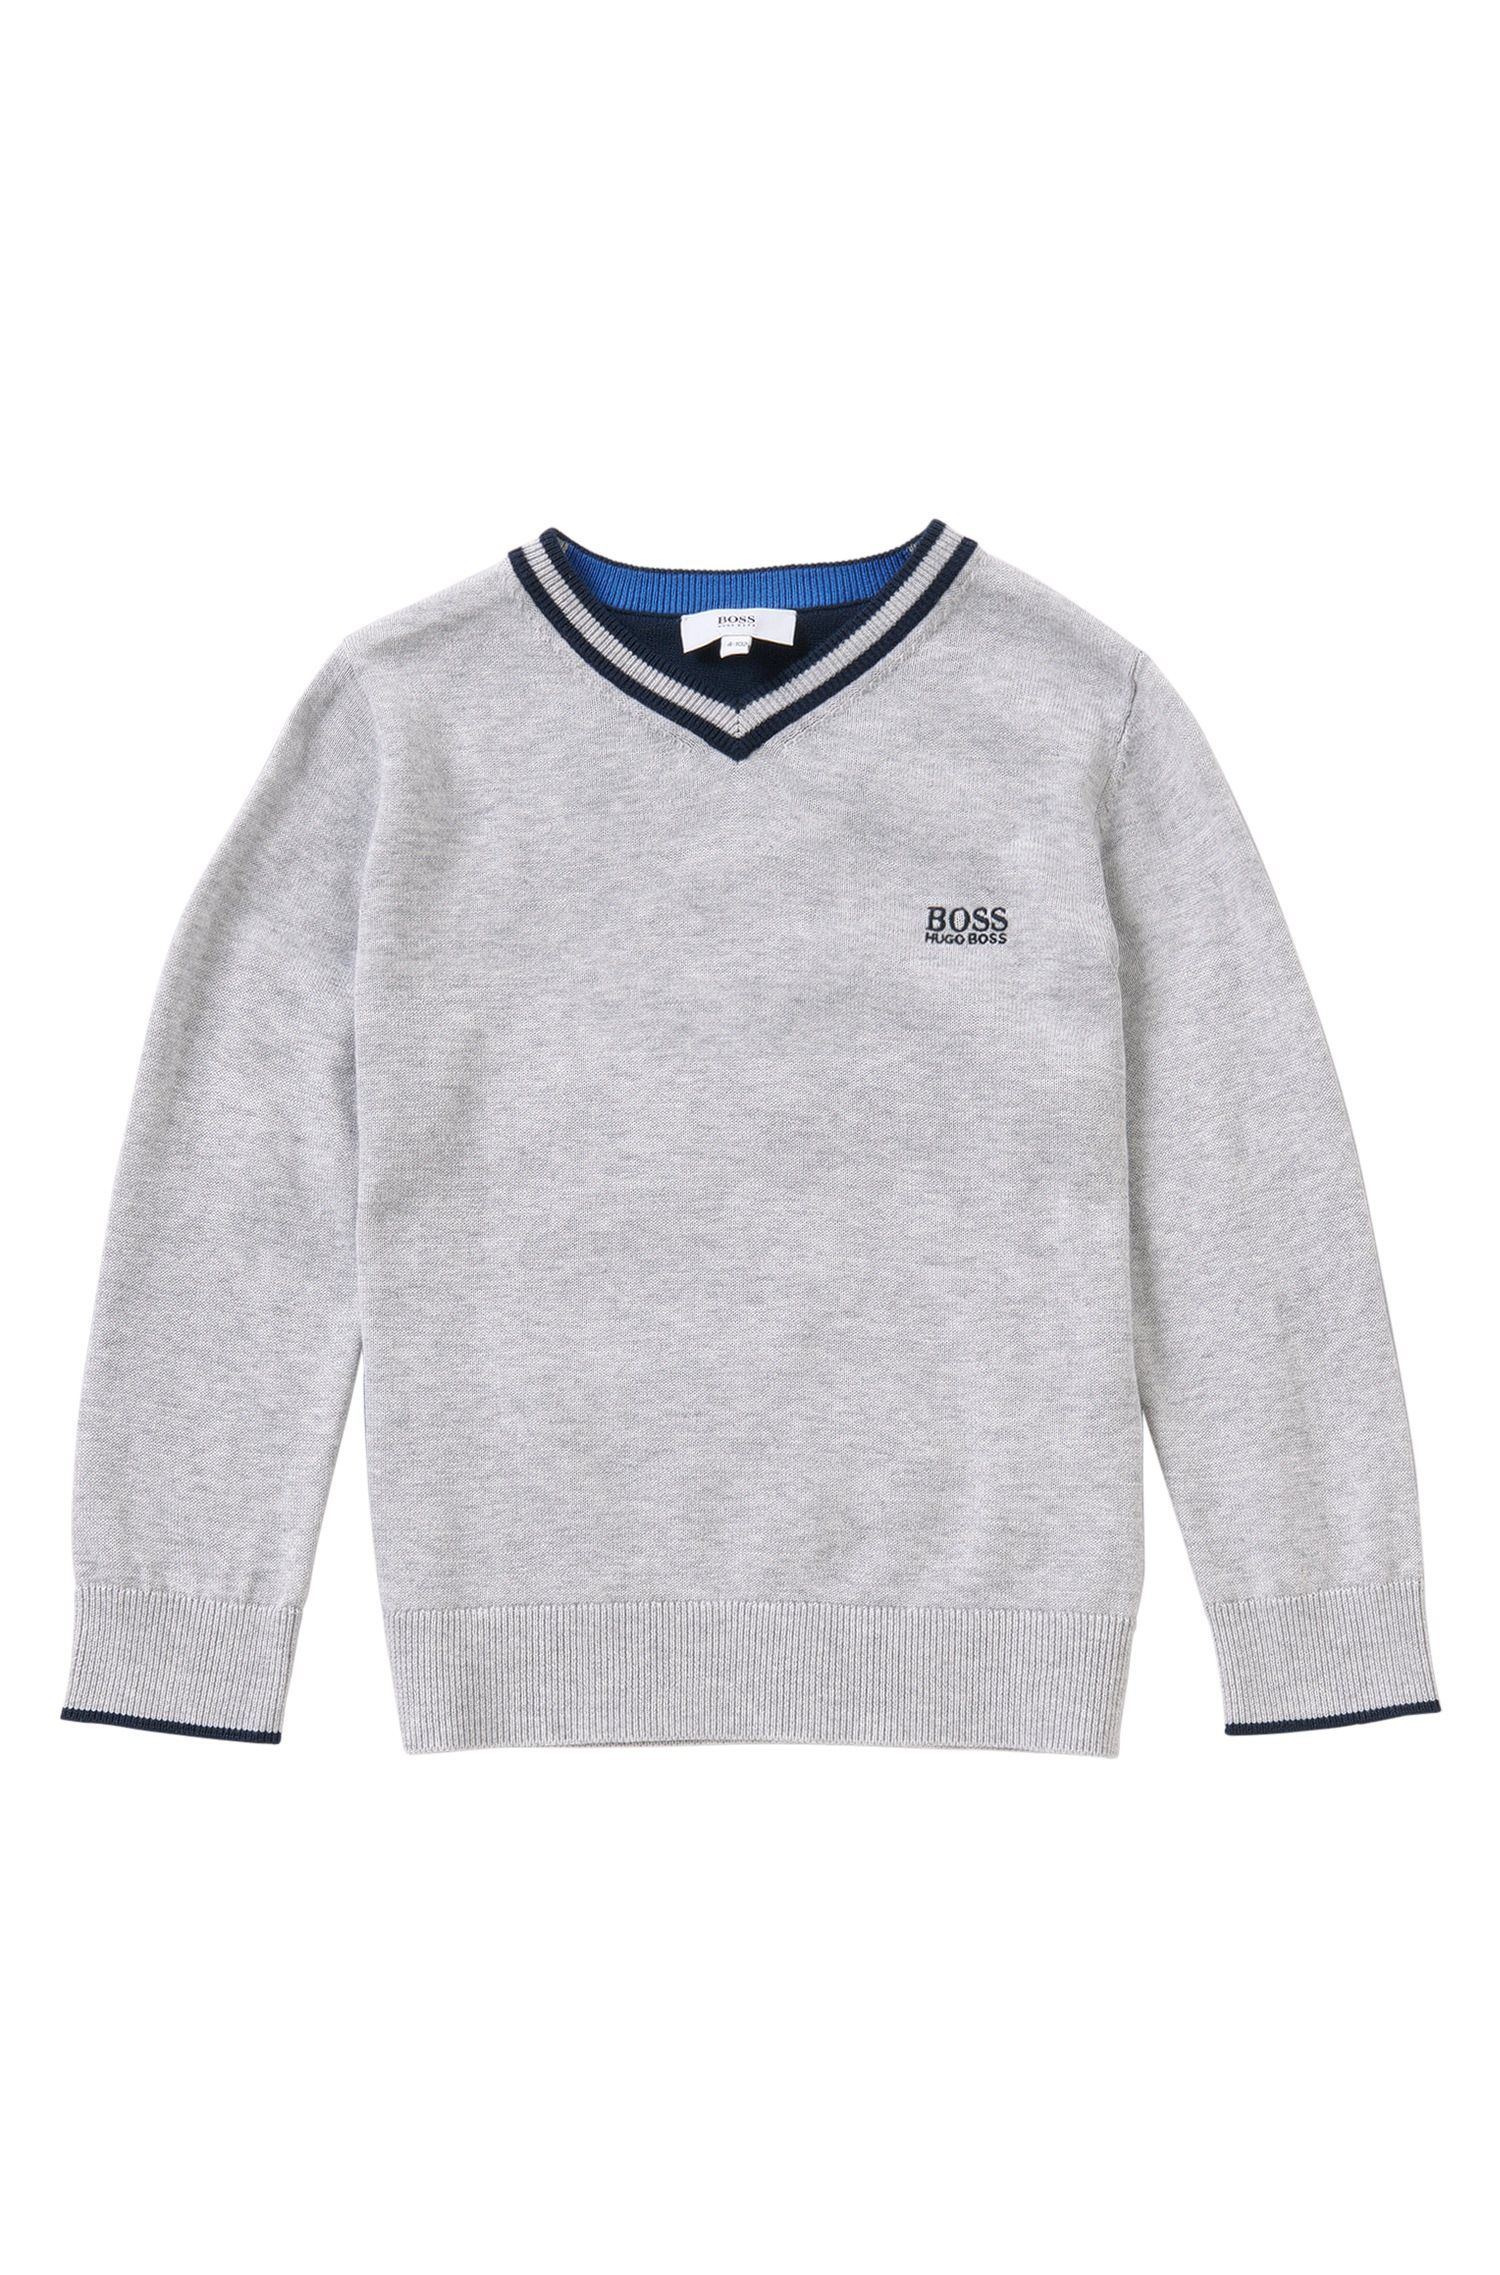 Mottled kids' sweater in cotton: 'J25967'